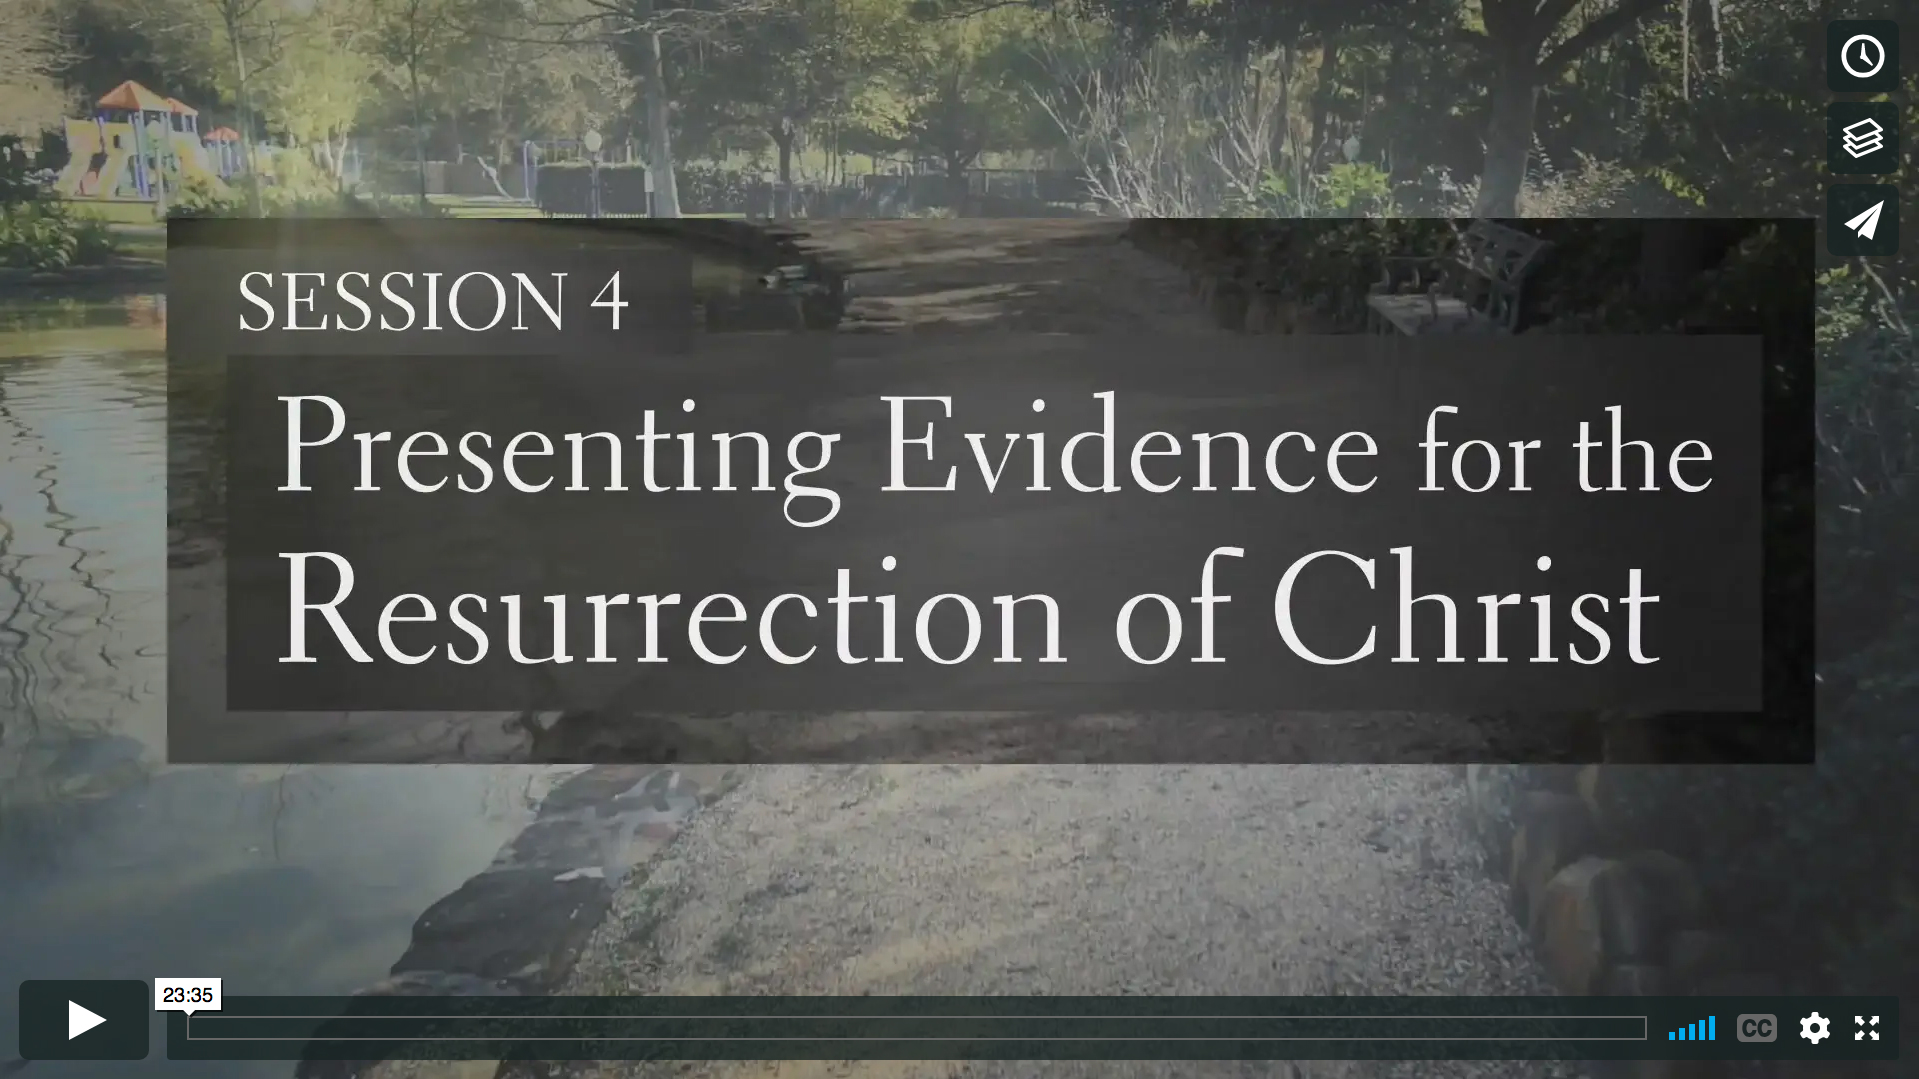 Session 4 - Presenting Evidence for the Resurrection of Christ